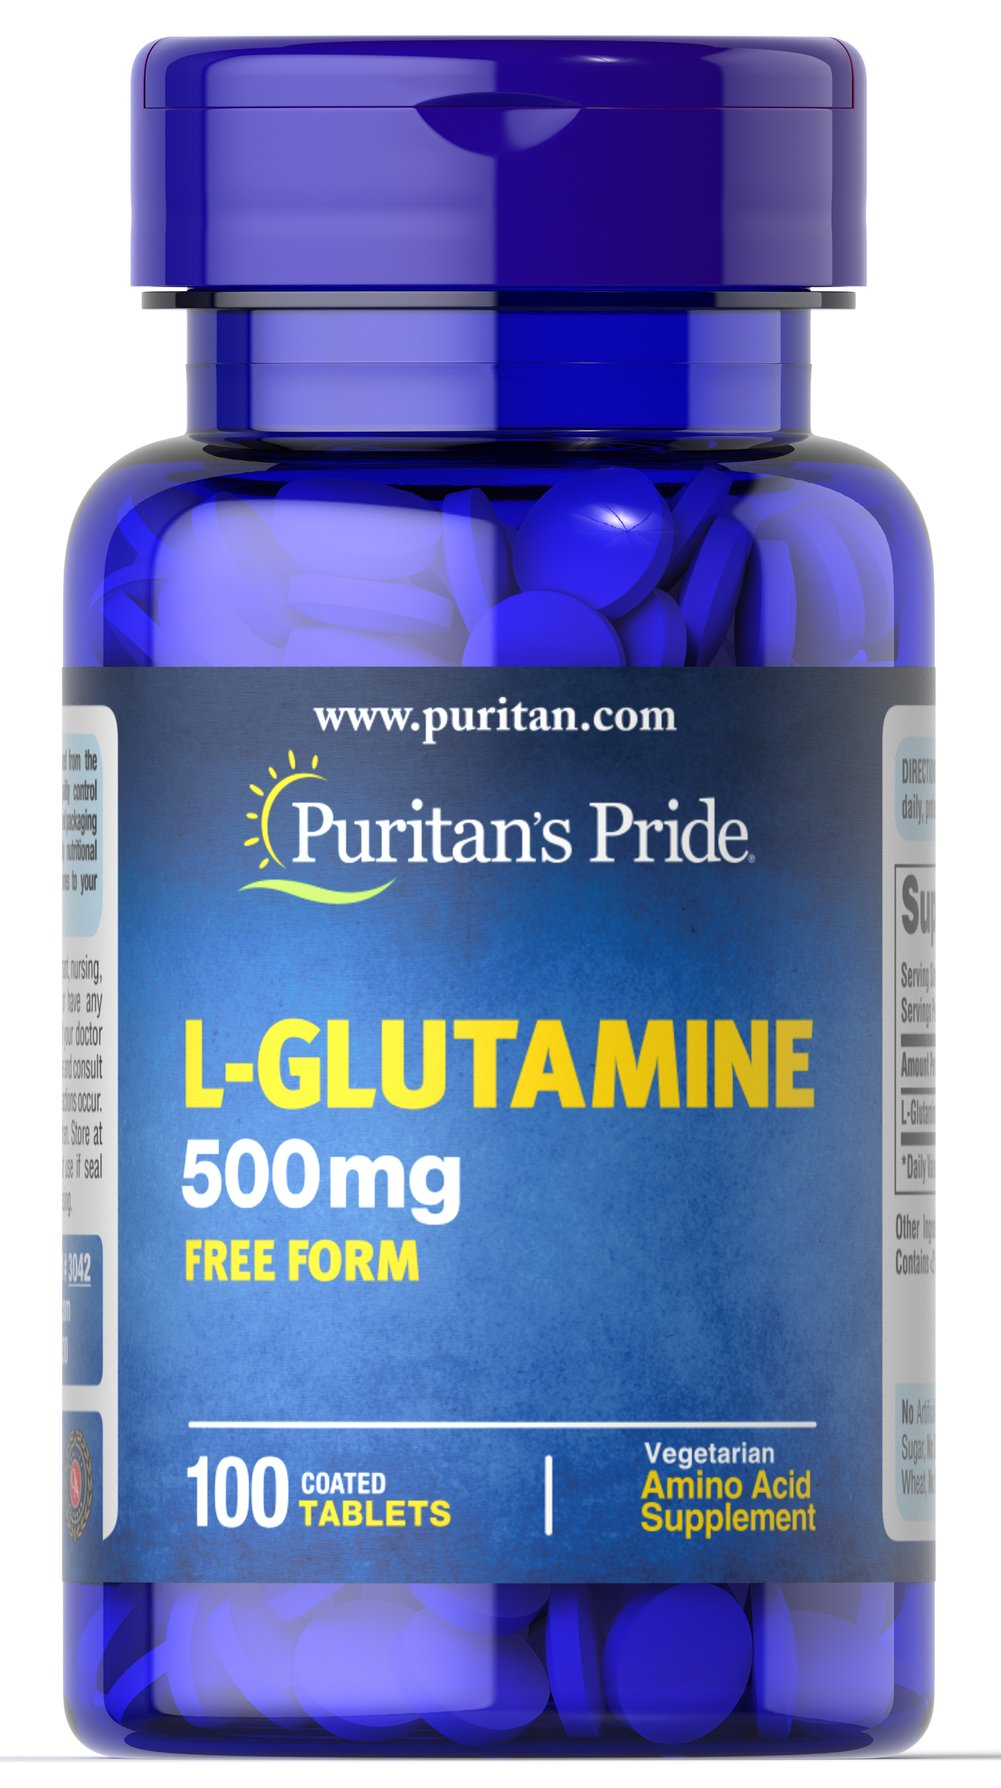 L-Glutamine 500 mg  100 Tablets 500 mg $11.99